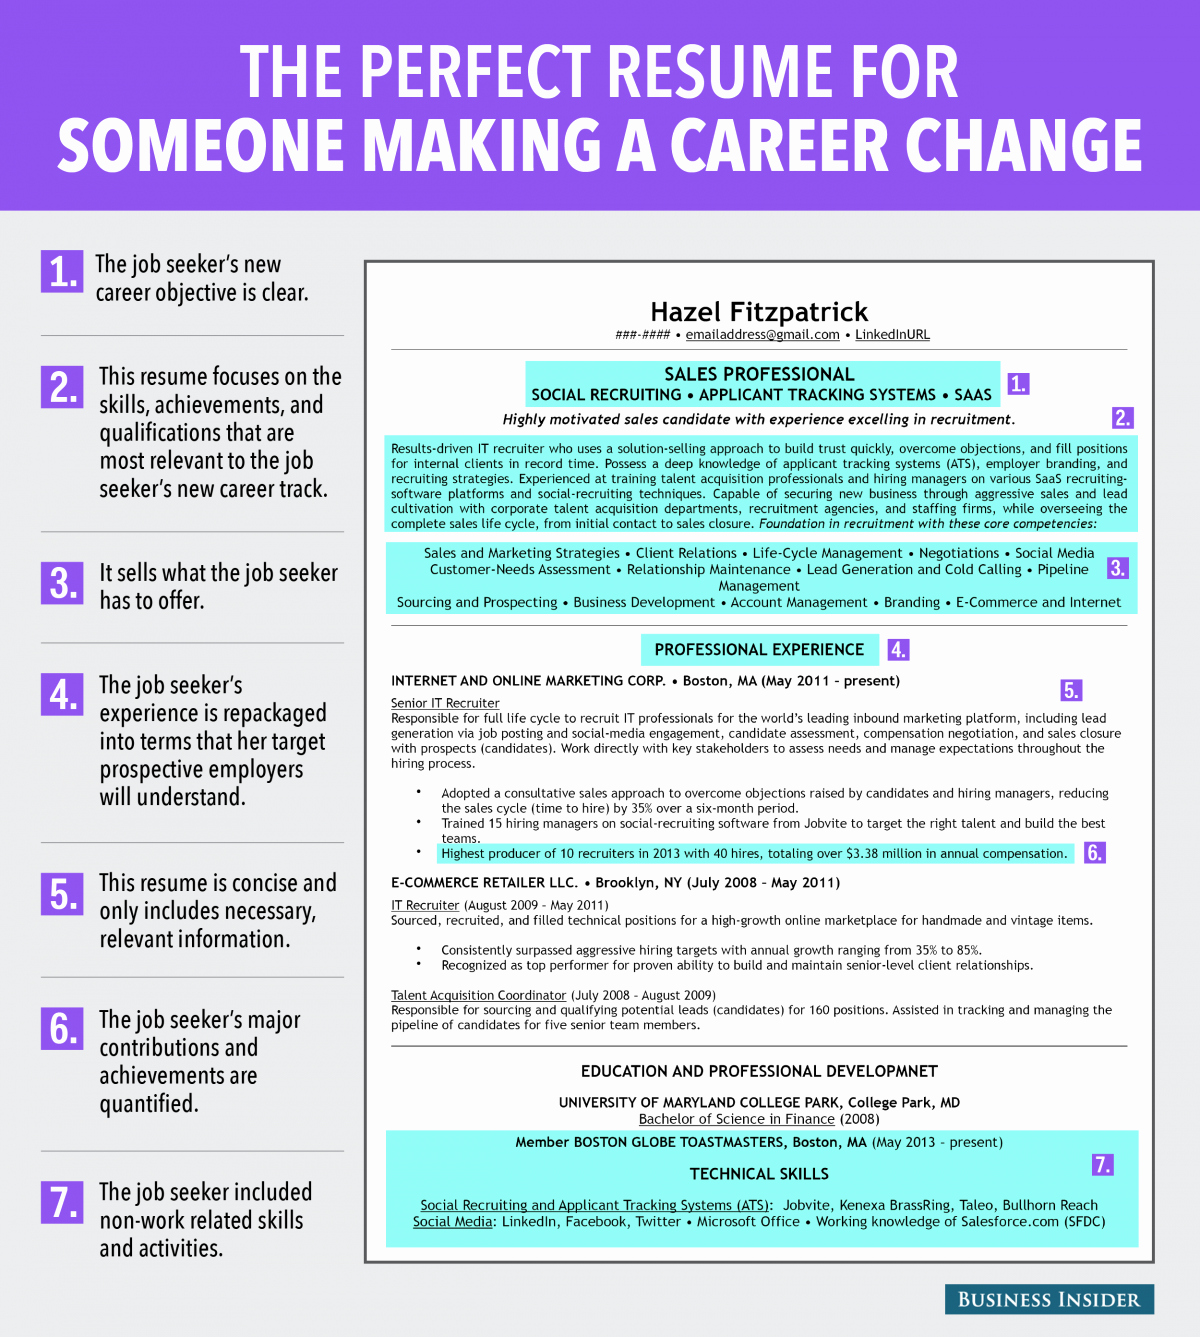 Ideal Resume for someone Making A Career Change Business